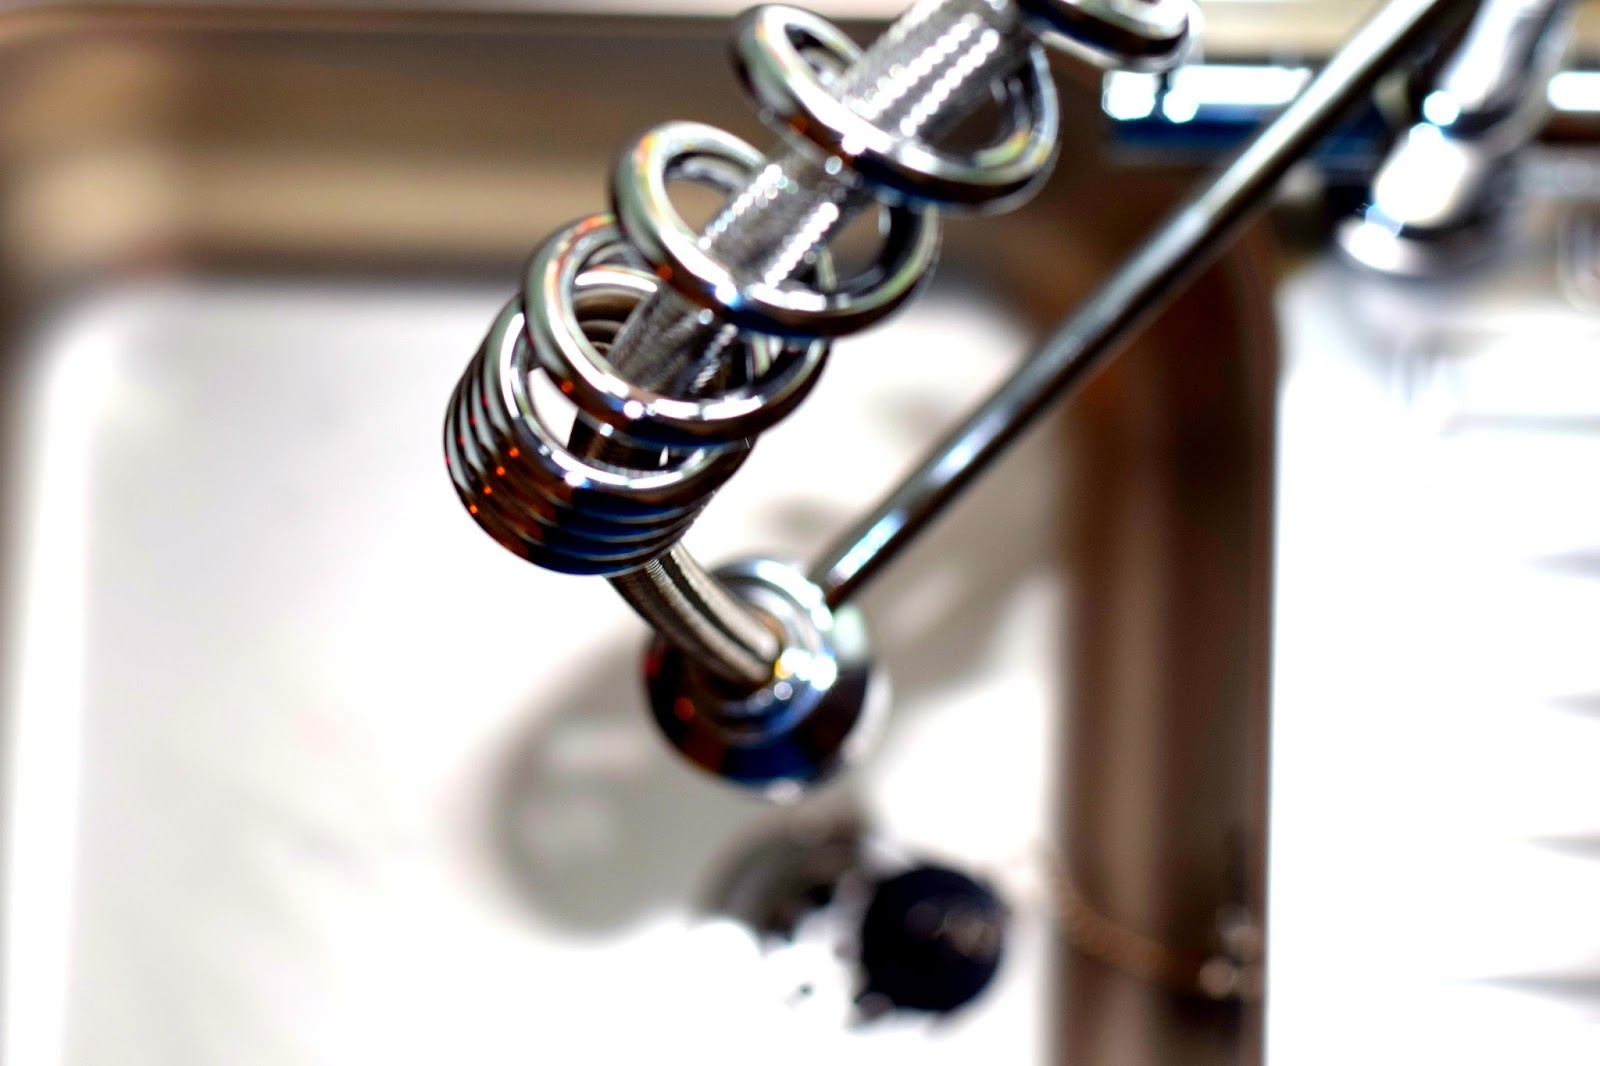 A New Kitchen Sink And Taps